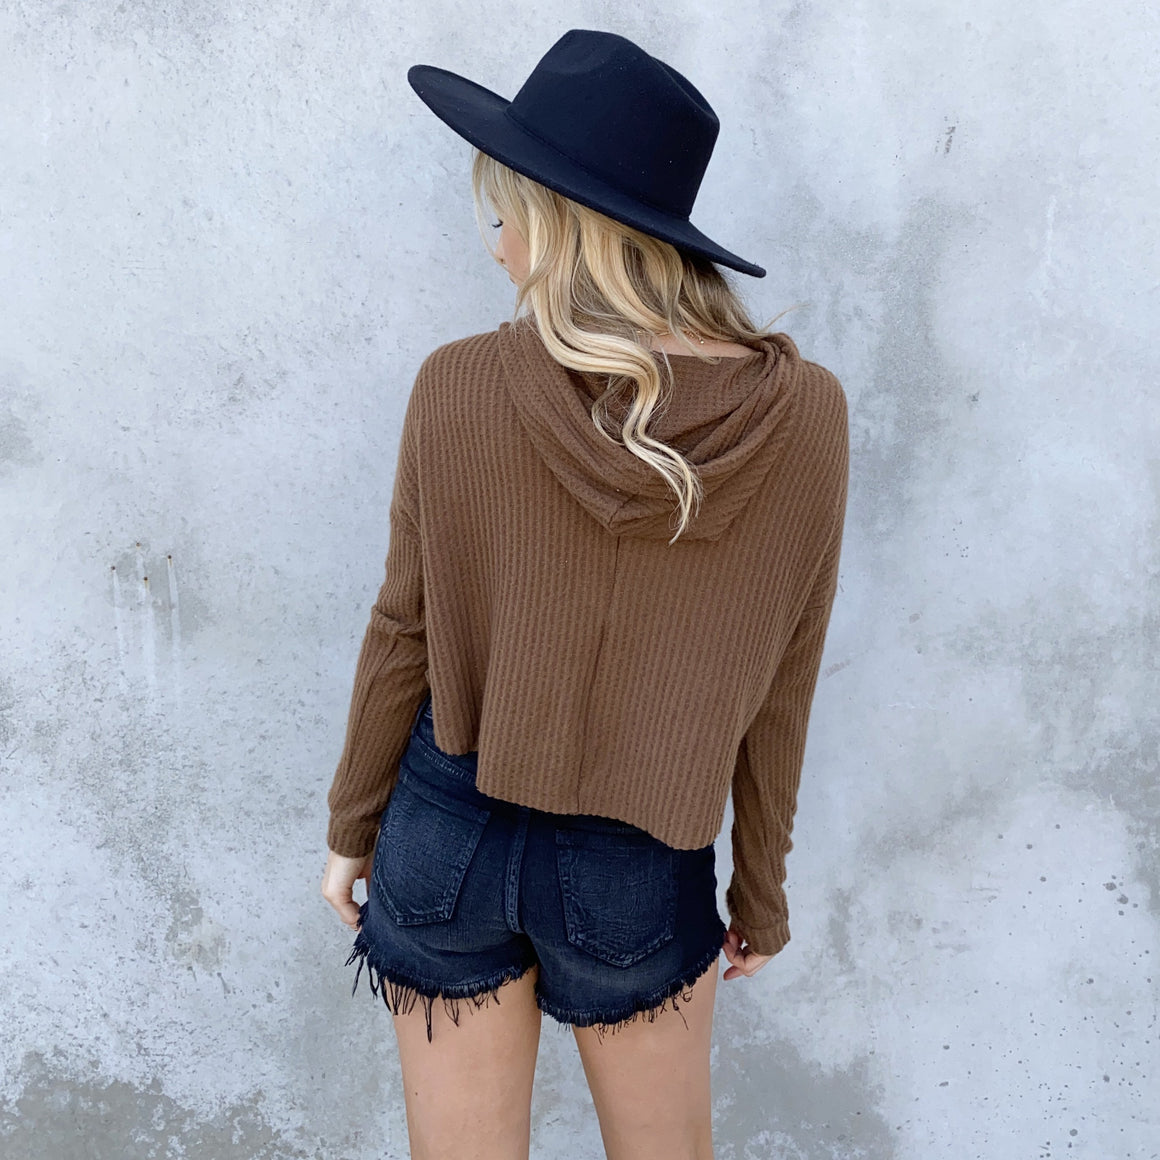 Want It Got It Brown Fleece Hoodie Sweater Top - Dainty Hooligan